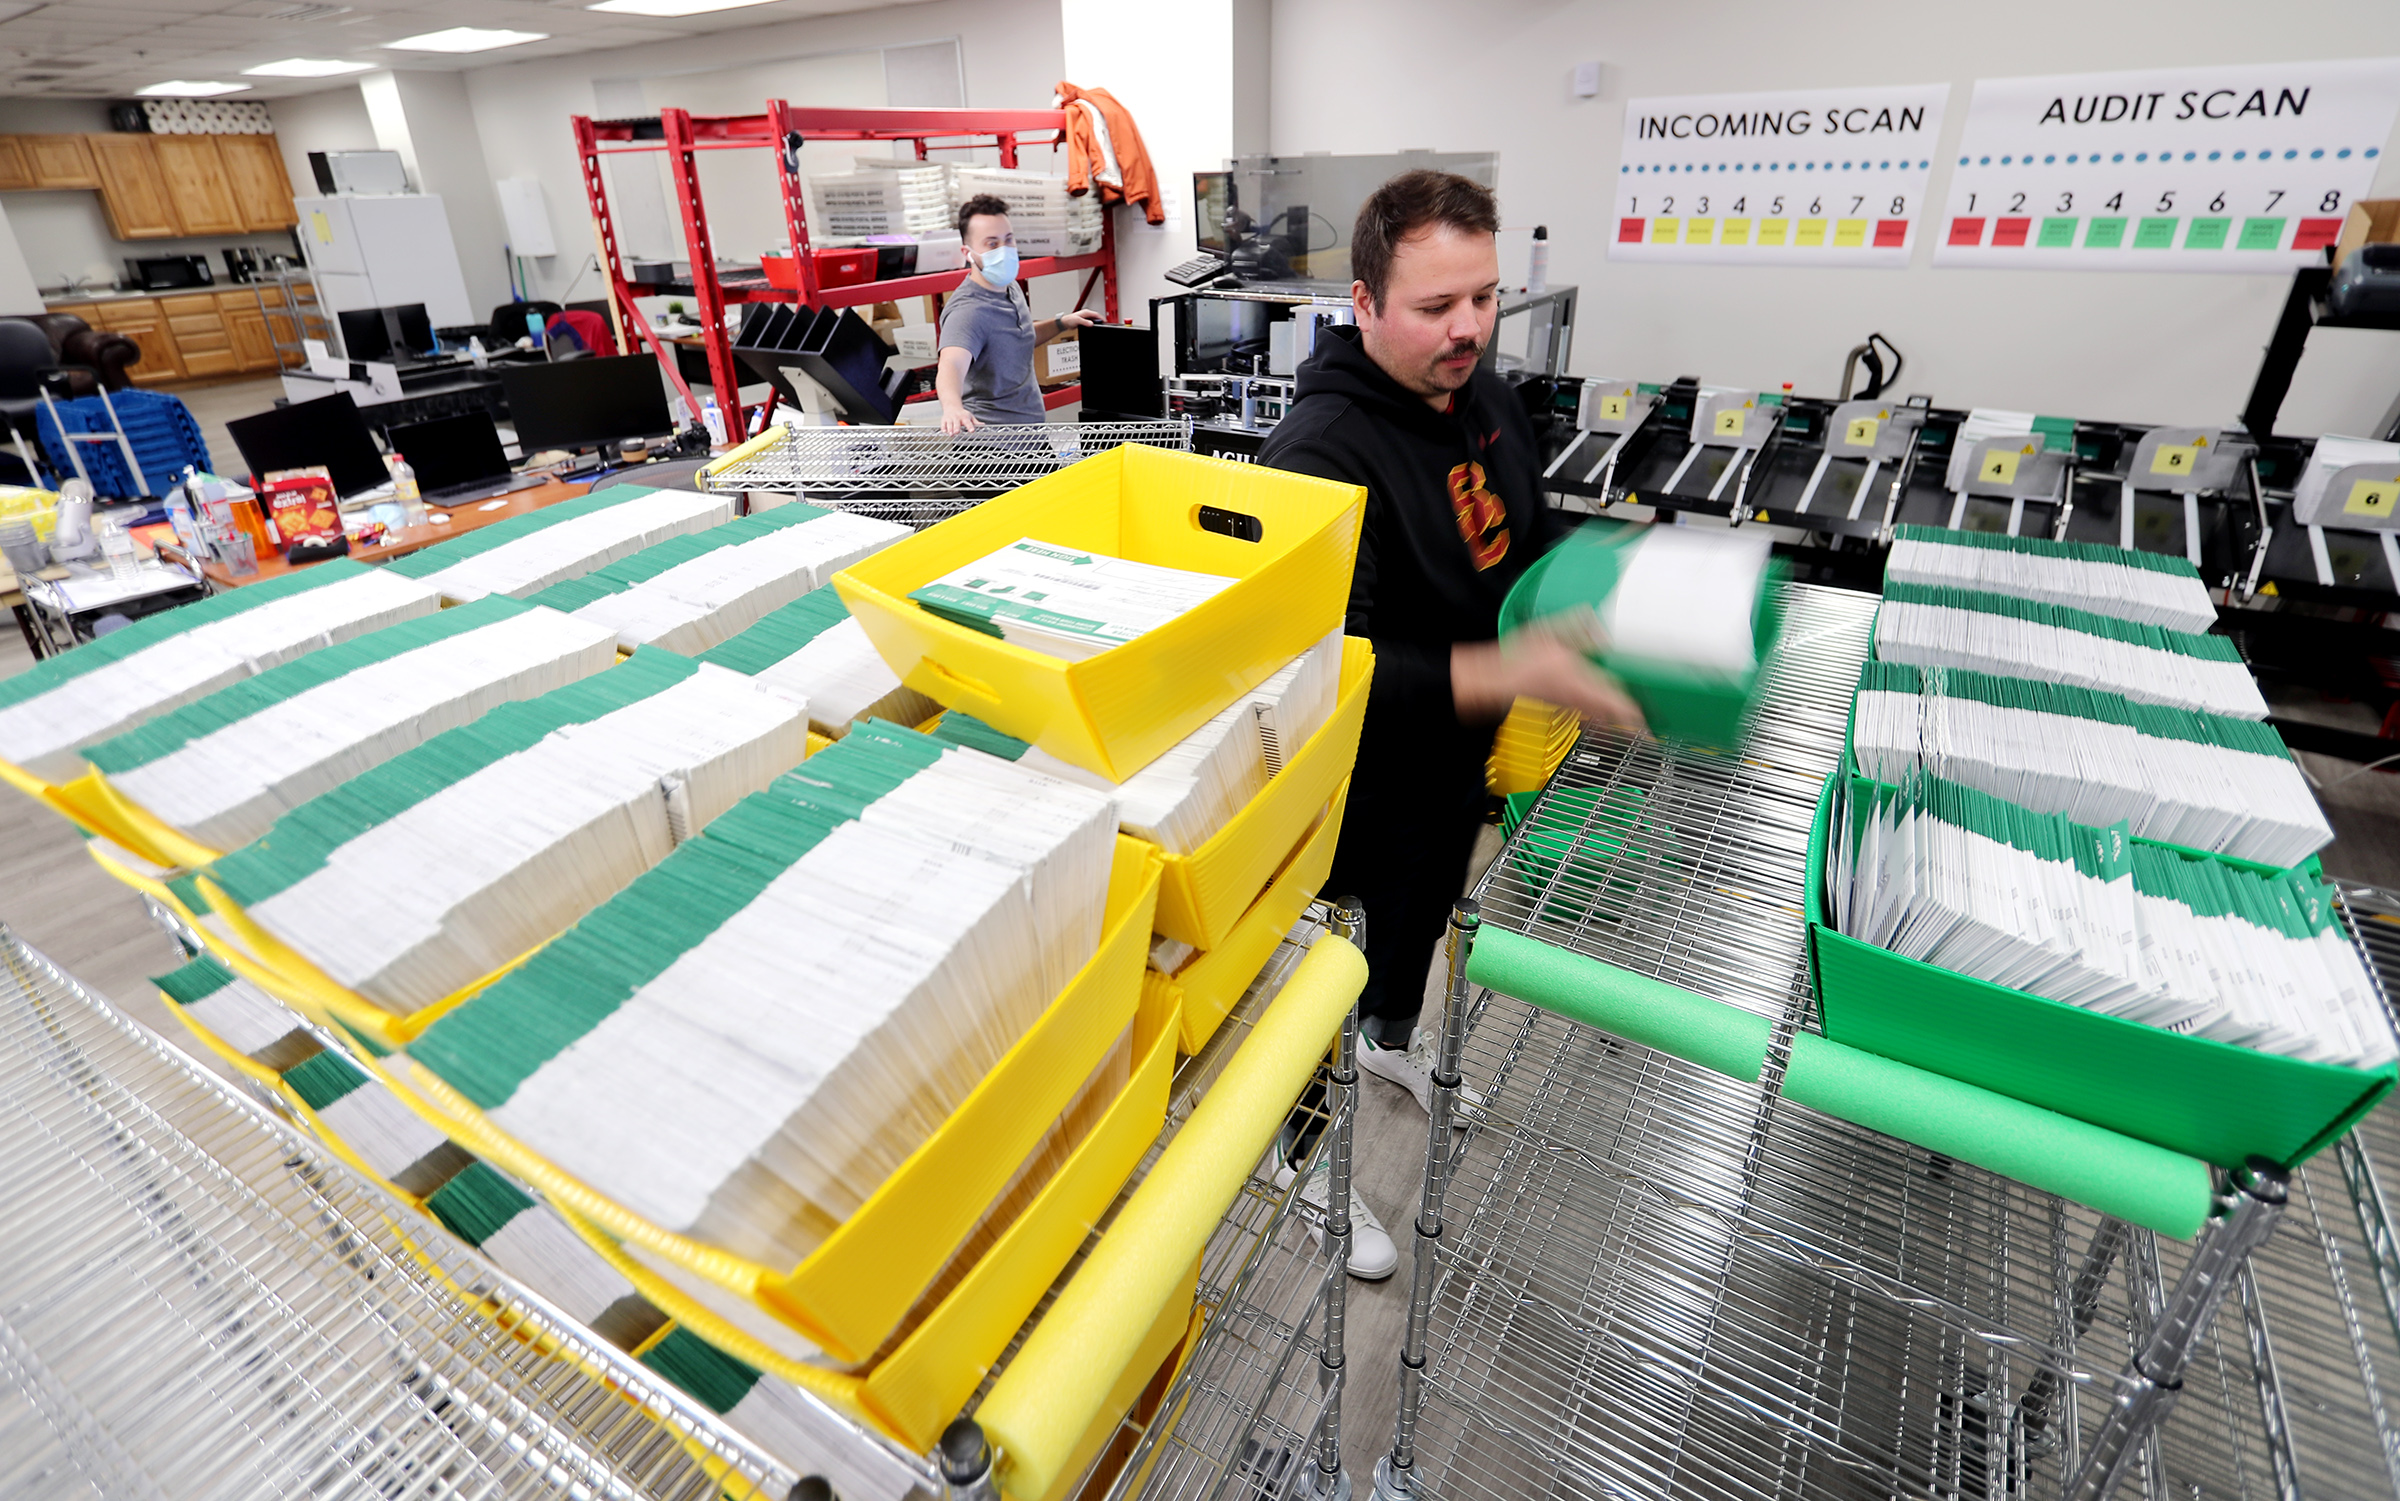 Election ballots are processed by workers at the Utah County Clerk/Auditor's Office in Provo on Tuesday, Oct. 27, 2020.